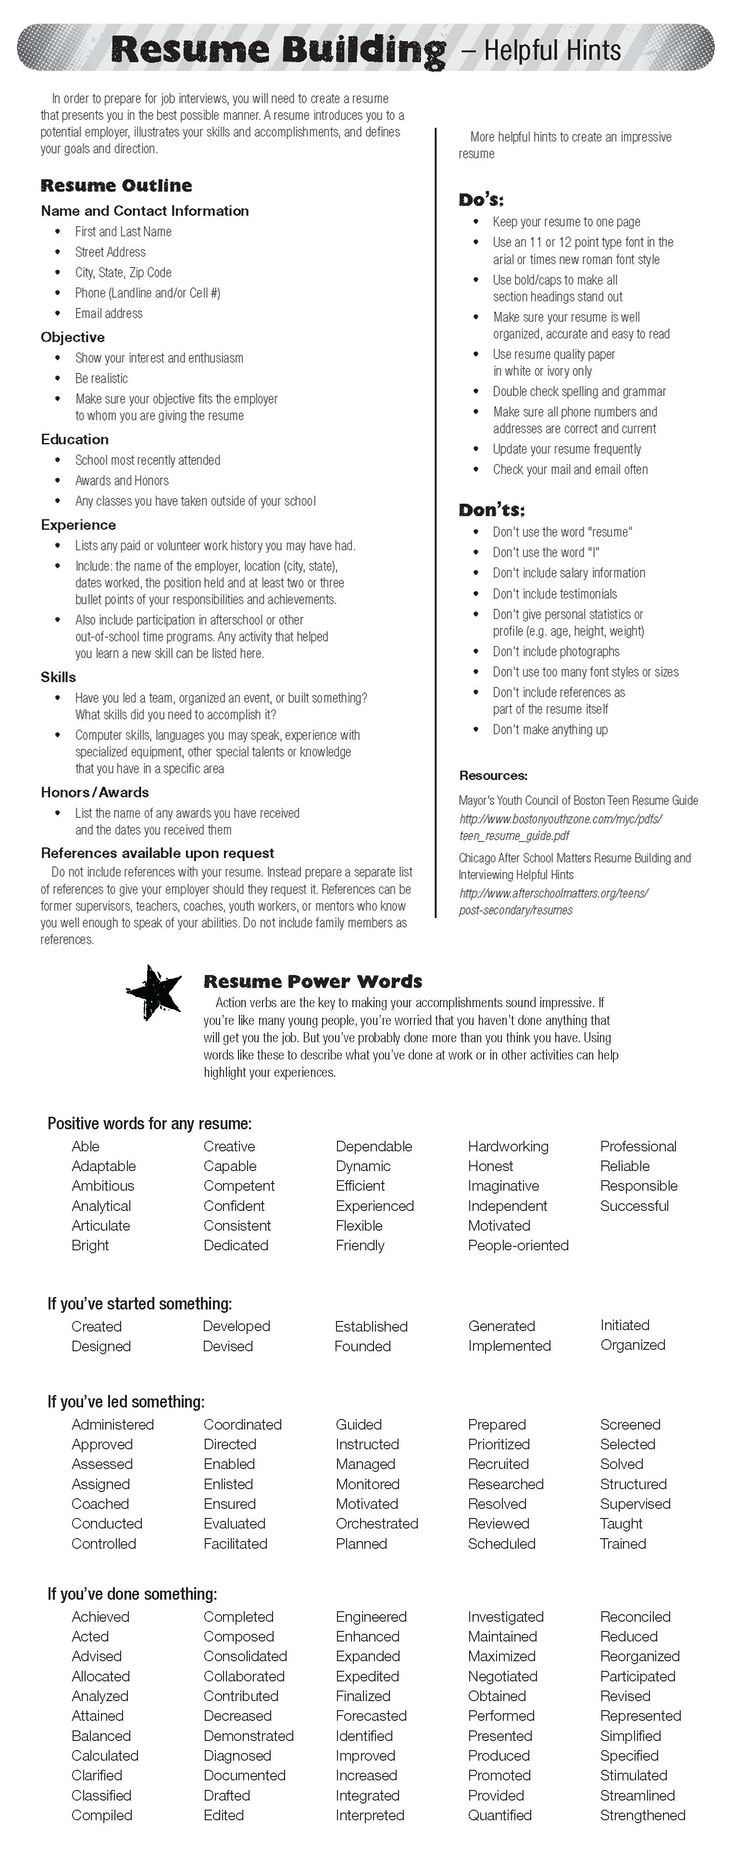 Opposenewapstandardsus  Sweet  Ideas About Resume On Pinterest  Cv Format Resume Cv And  With Likable  Ideas About Resume On Pinterest  Cv Format Resume Cv And Resume Templates With Awesome Teacher Resumes Samples Also Administrative Specialist Resume In Addition Microsoft Office Skills Resume And Work History On Resume As Well As Resume Objectives For Retail Additionally Resume Photos From Pinterestcom With Opposenewapstandardsus  Likable  Ideas About Resume On Pinterest  Cv Format Resume Cv And  With Awesome  Ideas About Resume On Pinterest  Cv Format Resume Cv And Resume Templates And Sweet Teacher Resumes Samples Also Administrative Specialist Resume In Addition Microsoft Office Skills Resume From Pinterestcom